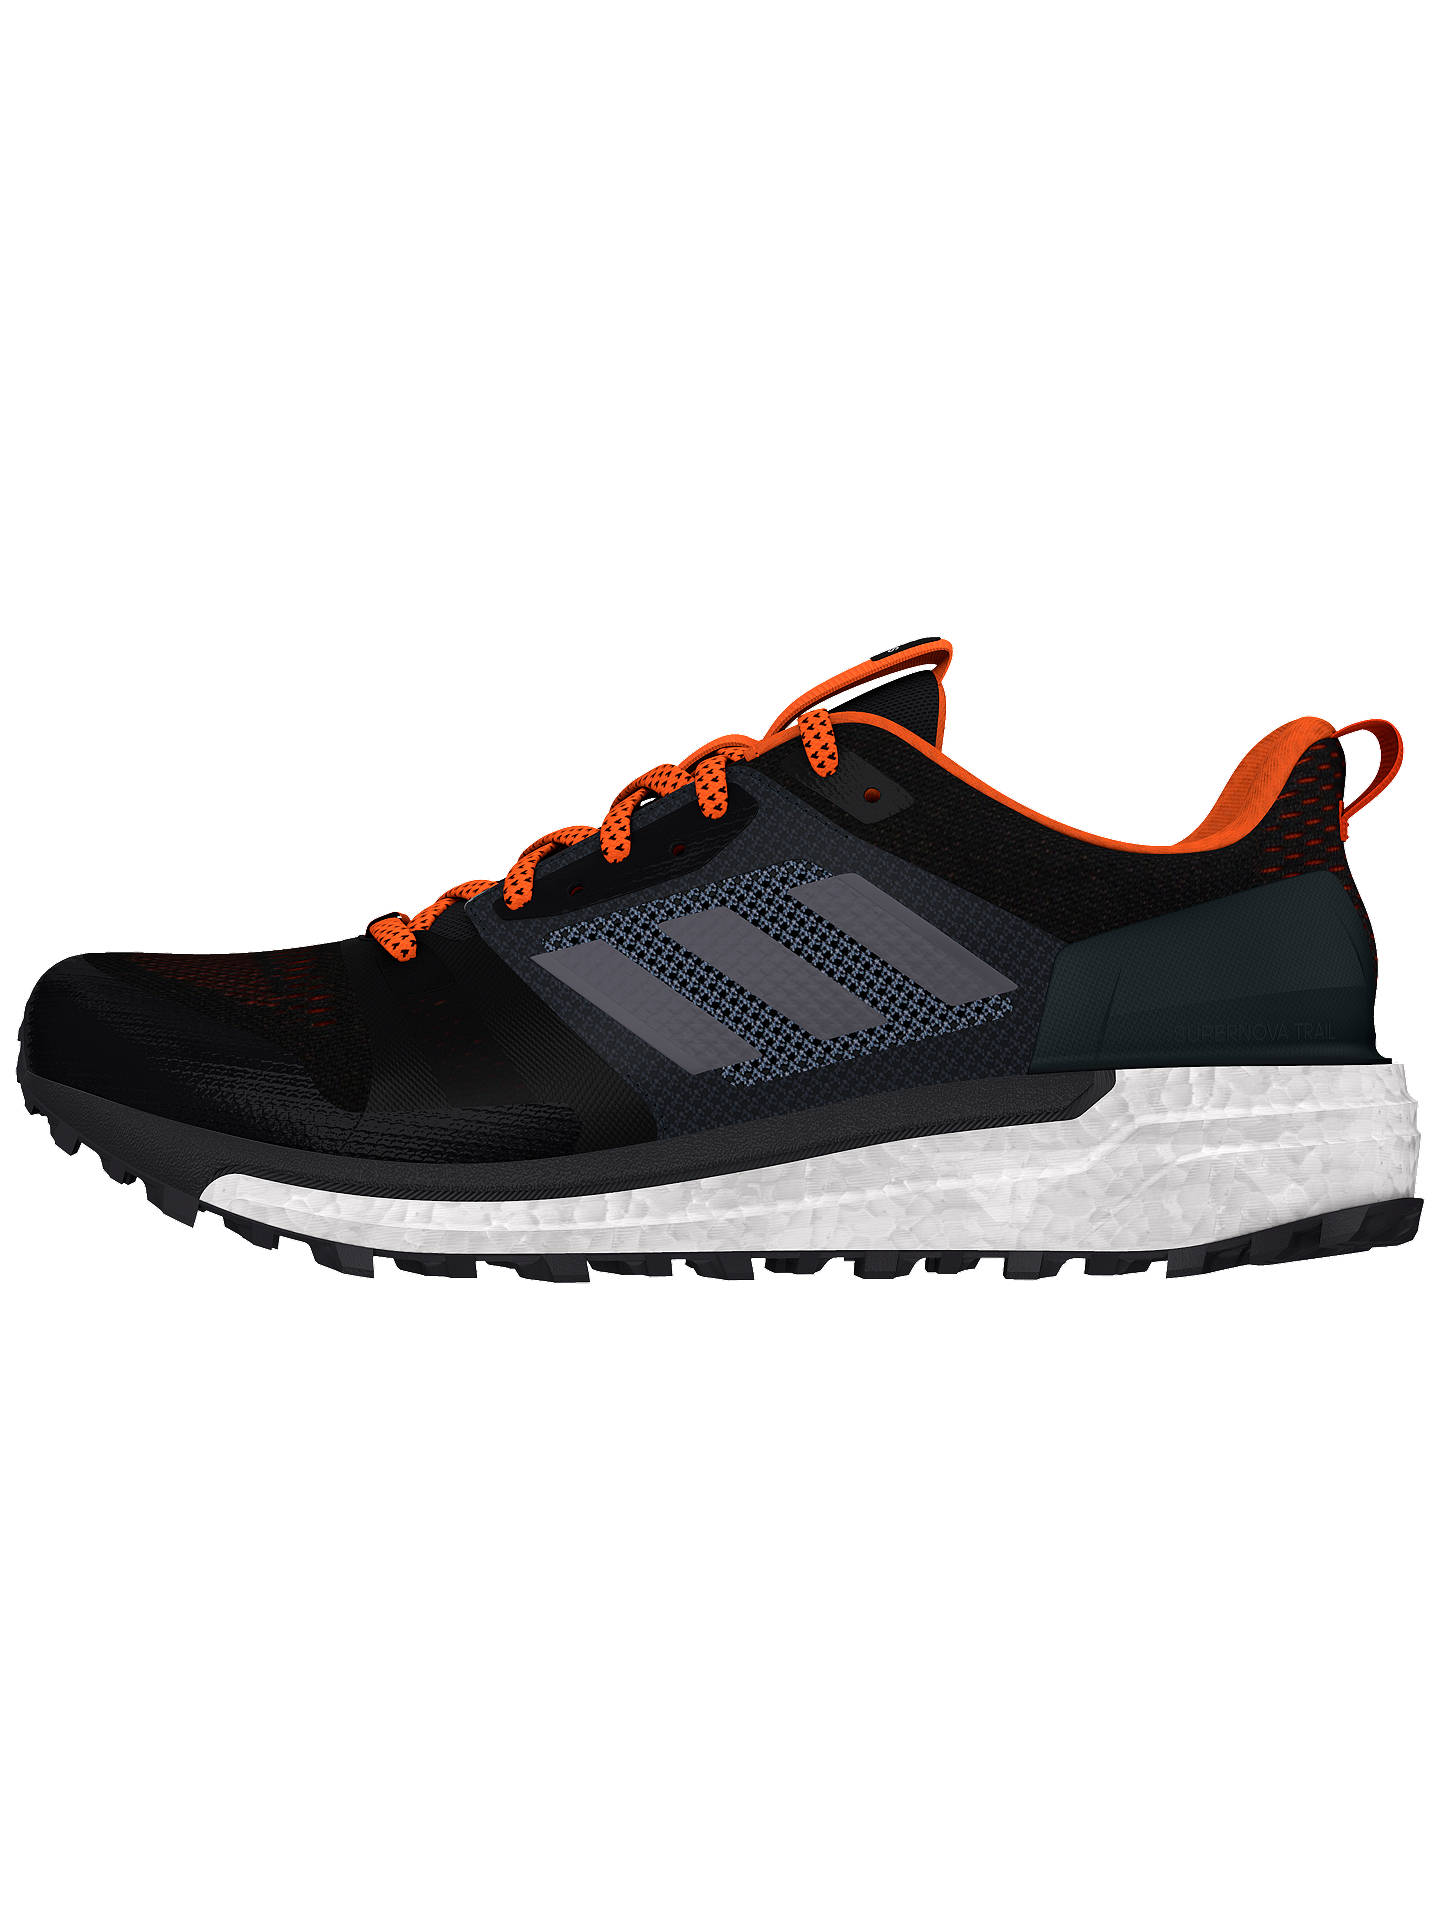 adidas trials running shoes